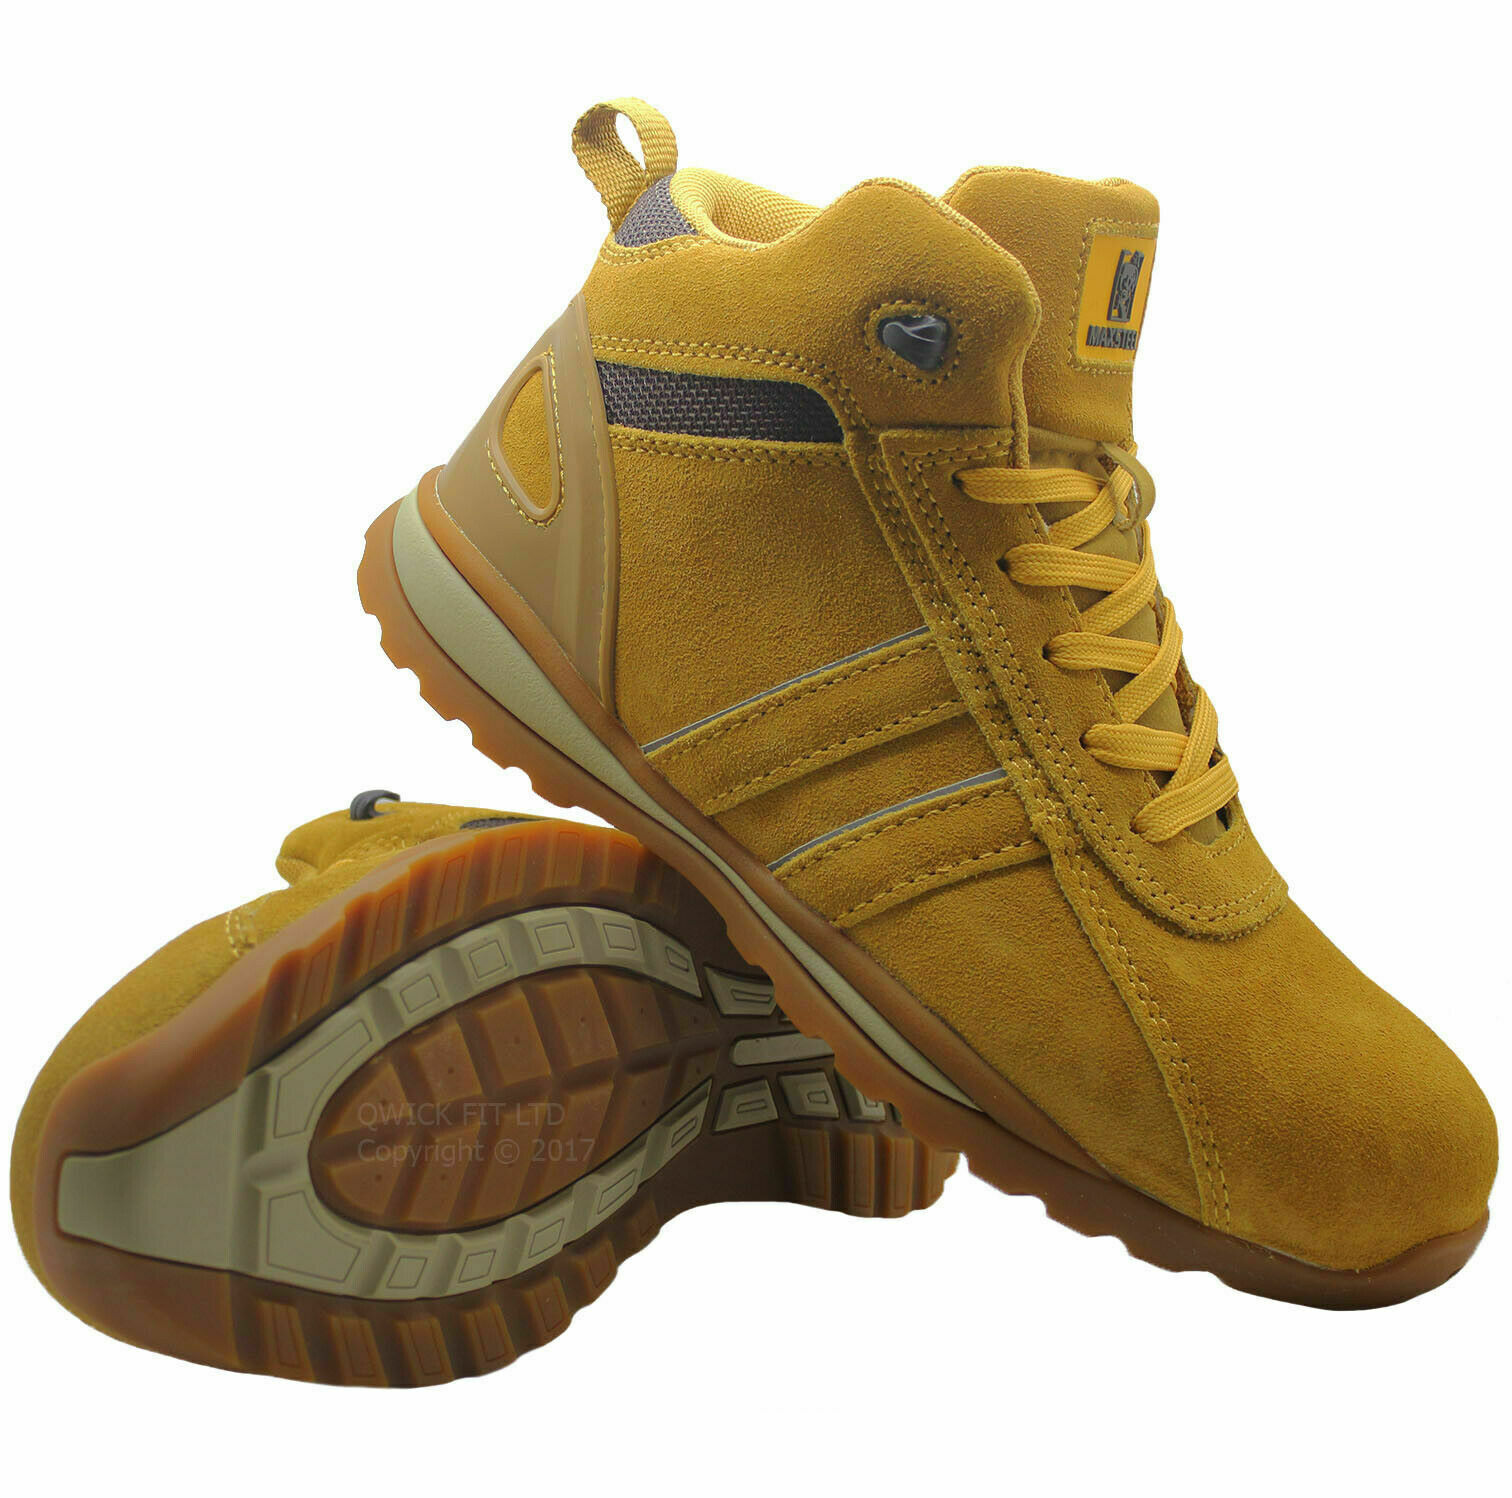 W Leather Work Safety Steel Toe Cap Ankle Boots Shoes